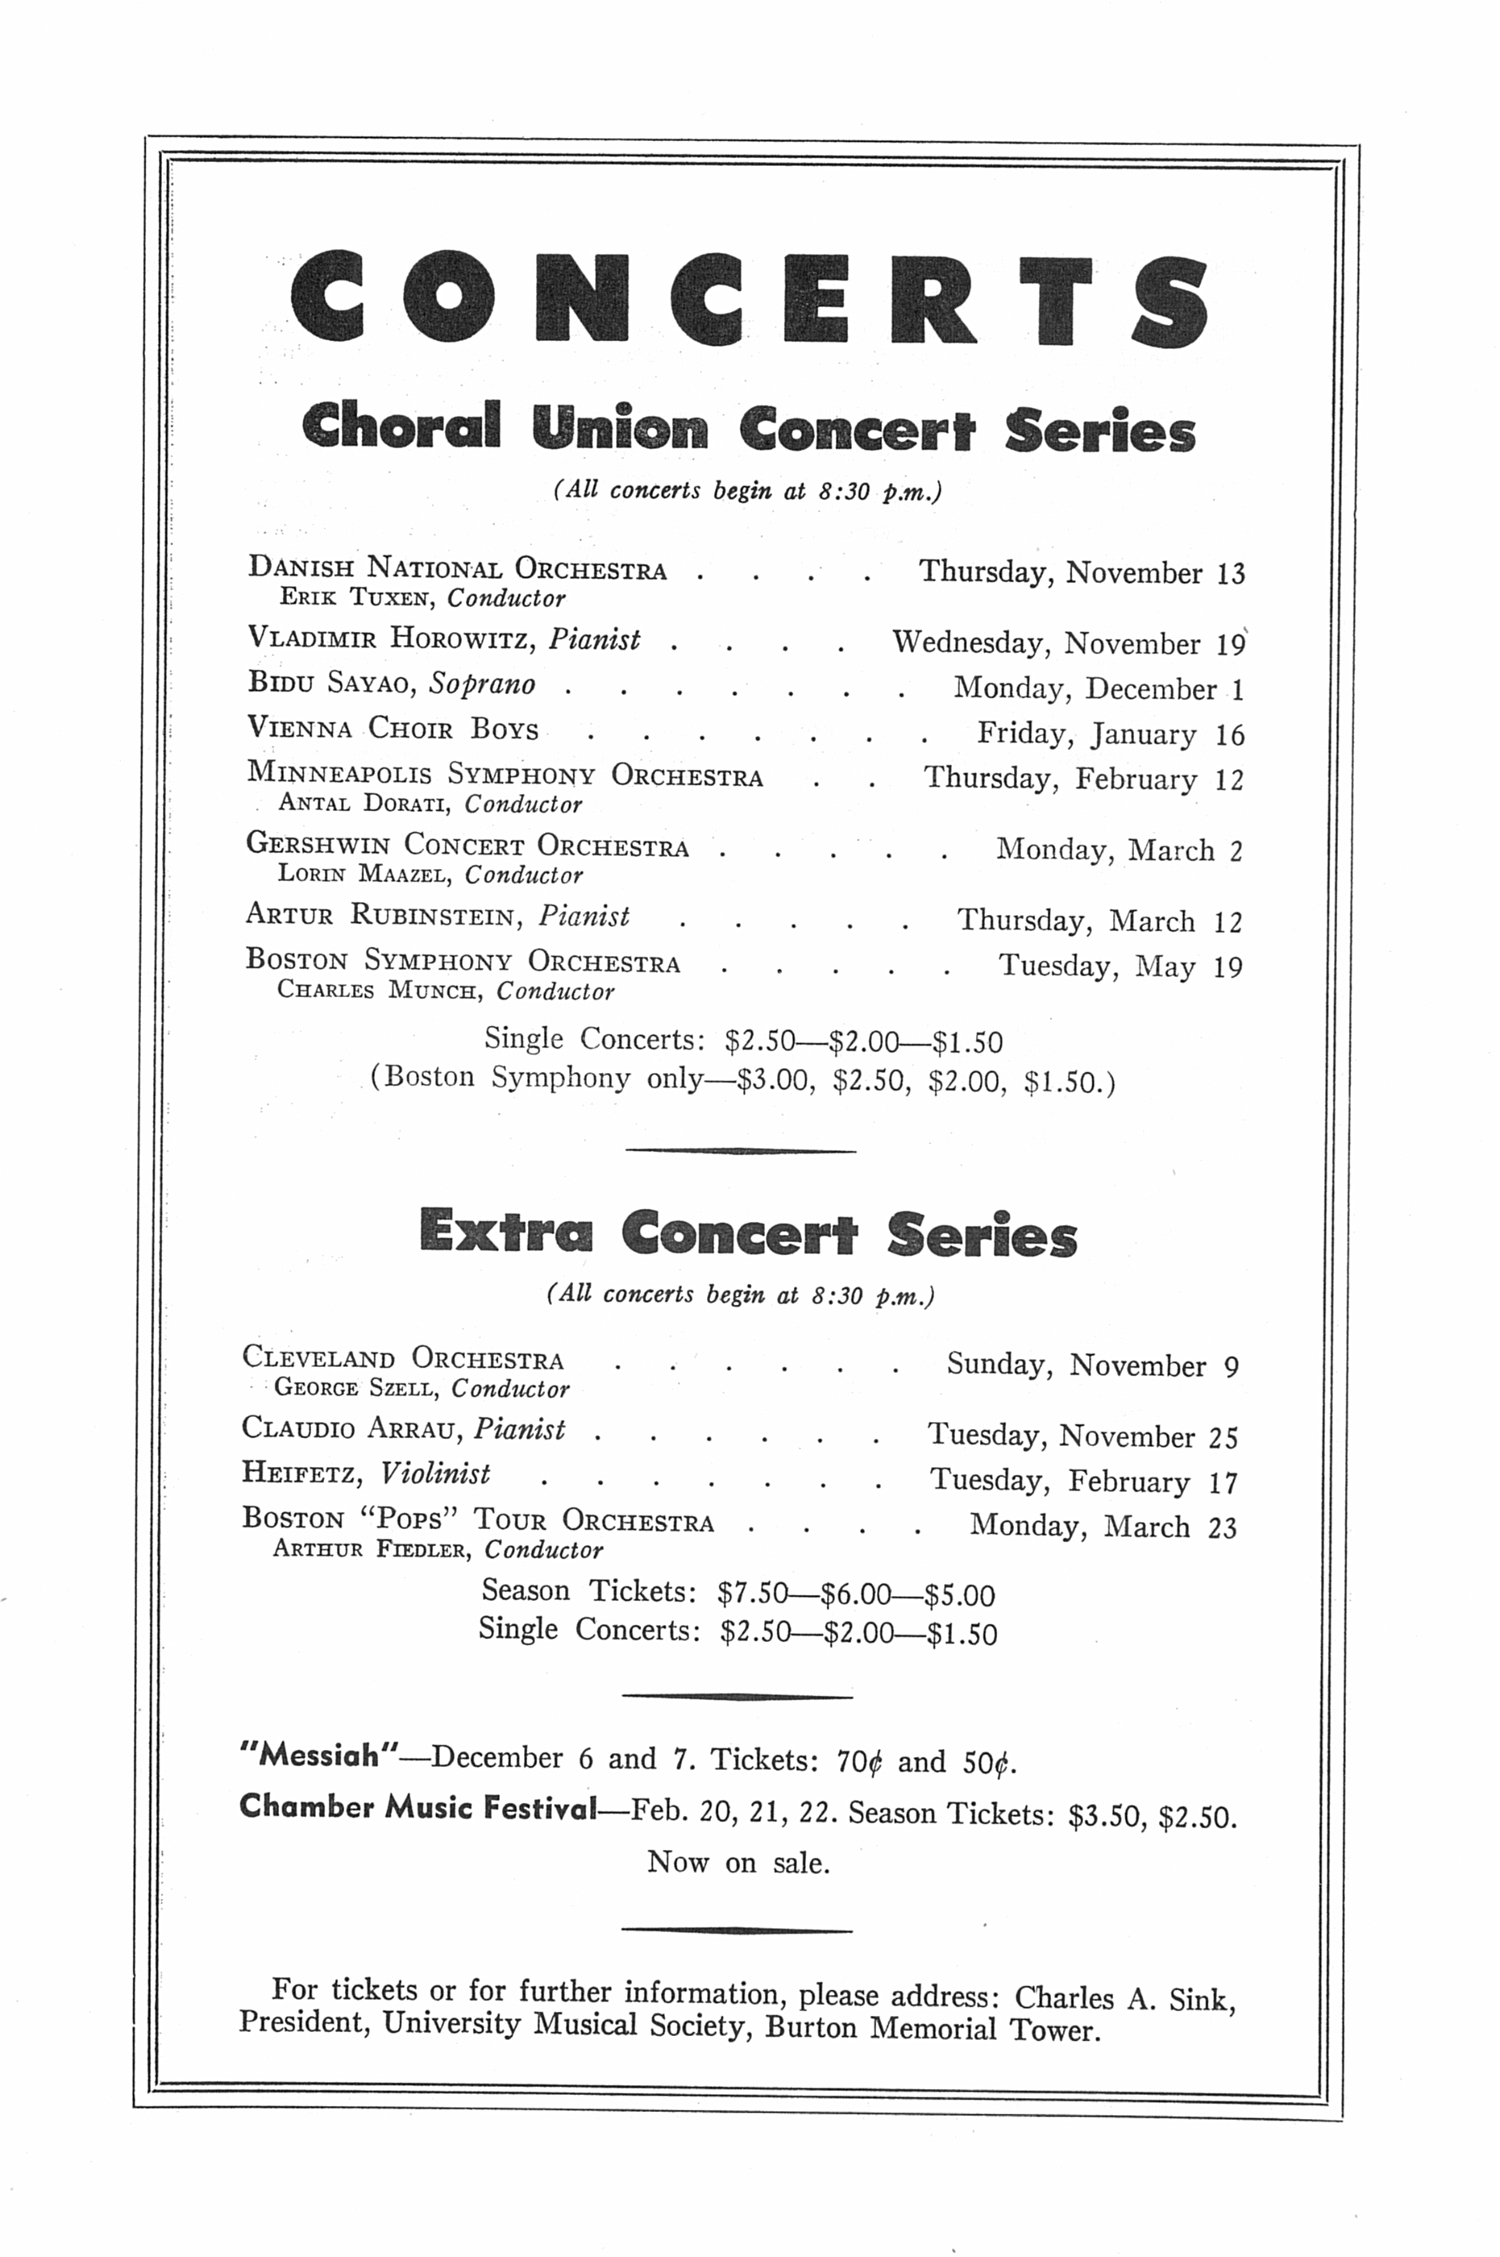 UMS Concert Program, Wednesday Evening, October 22, 1952: Seventy-fourth Annual Choral Union Concert Series -- Yehudi Menuhin image